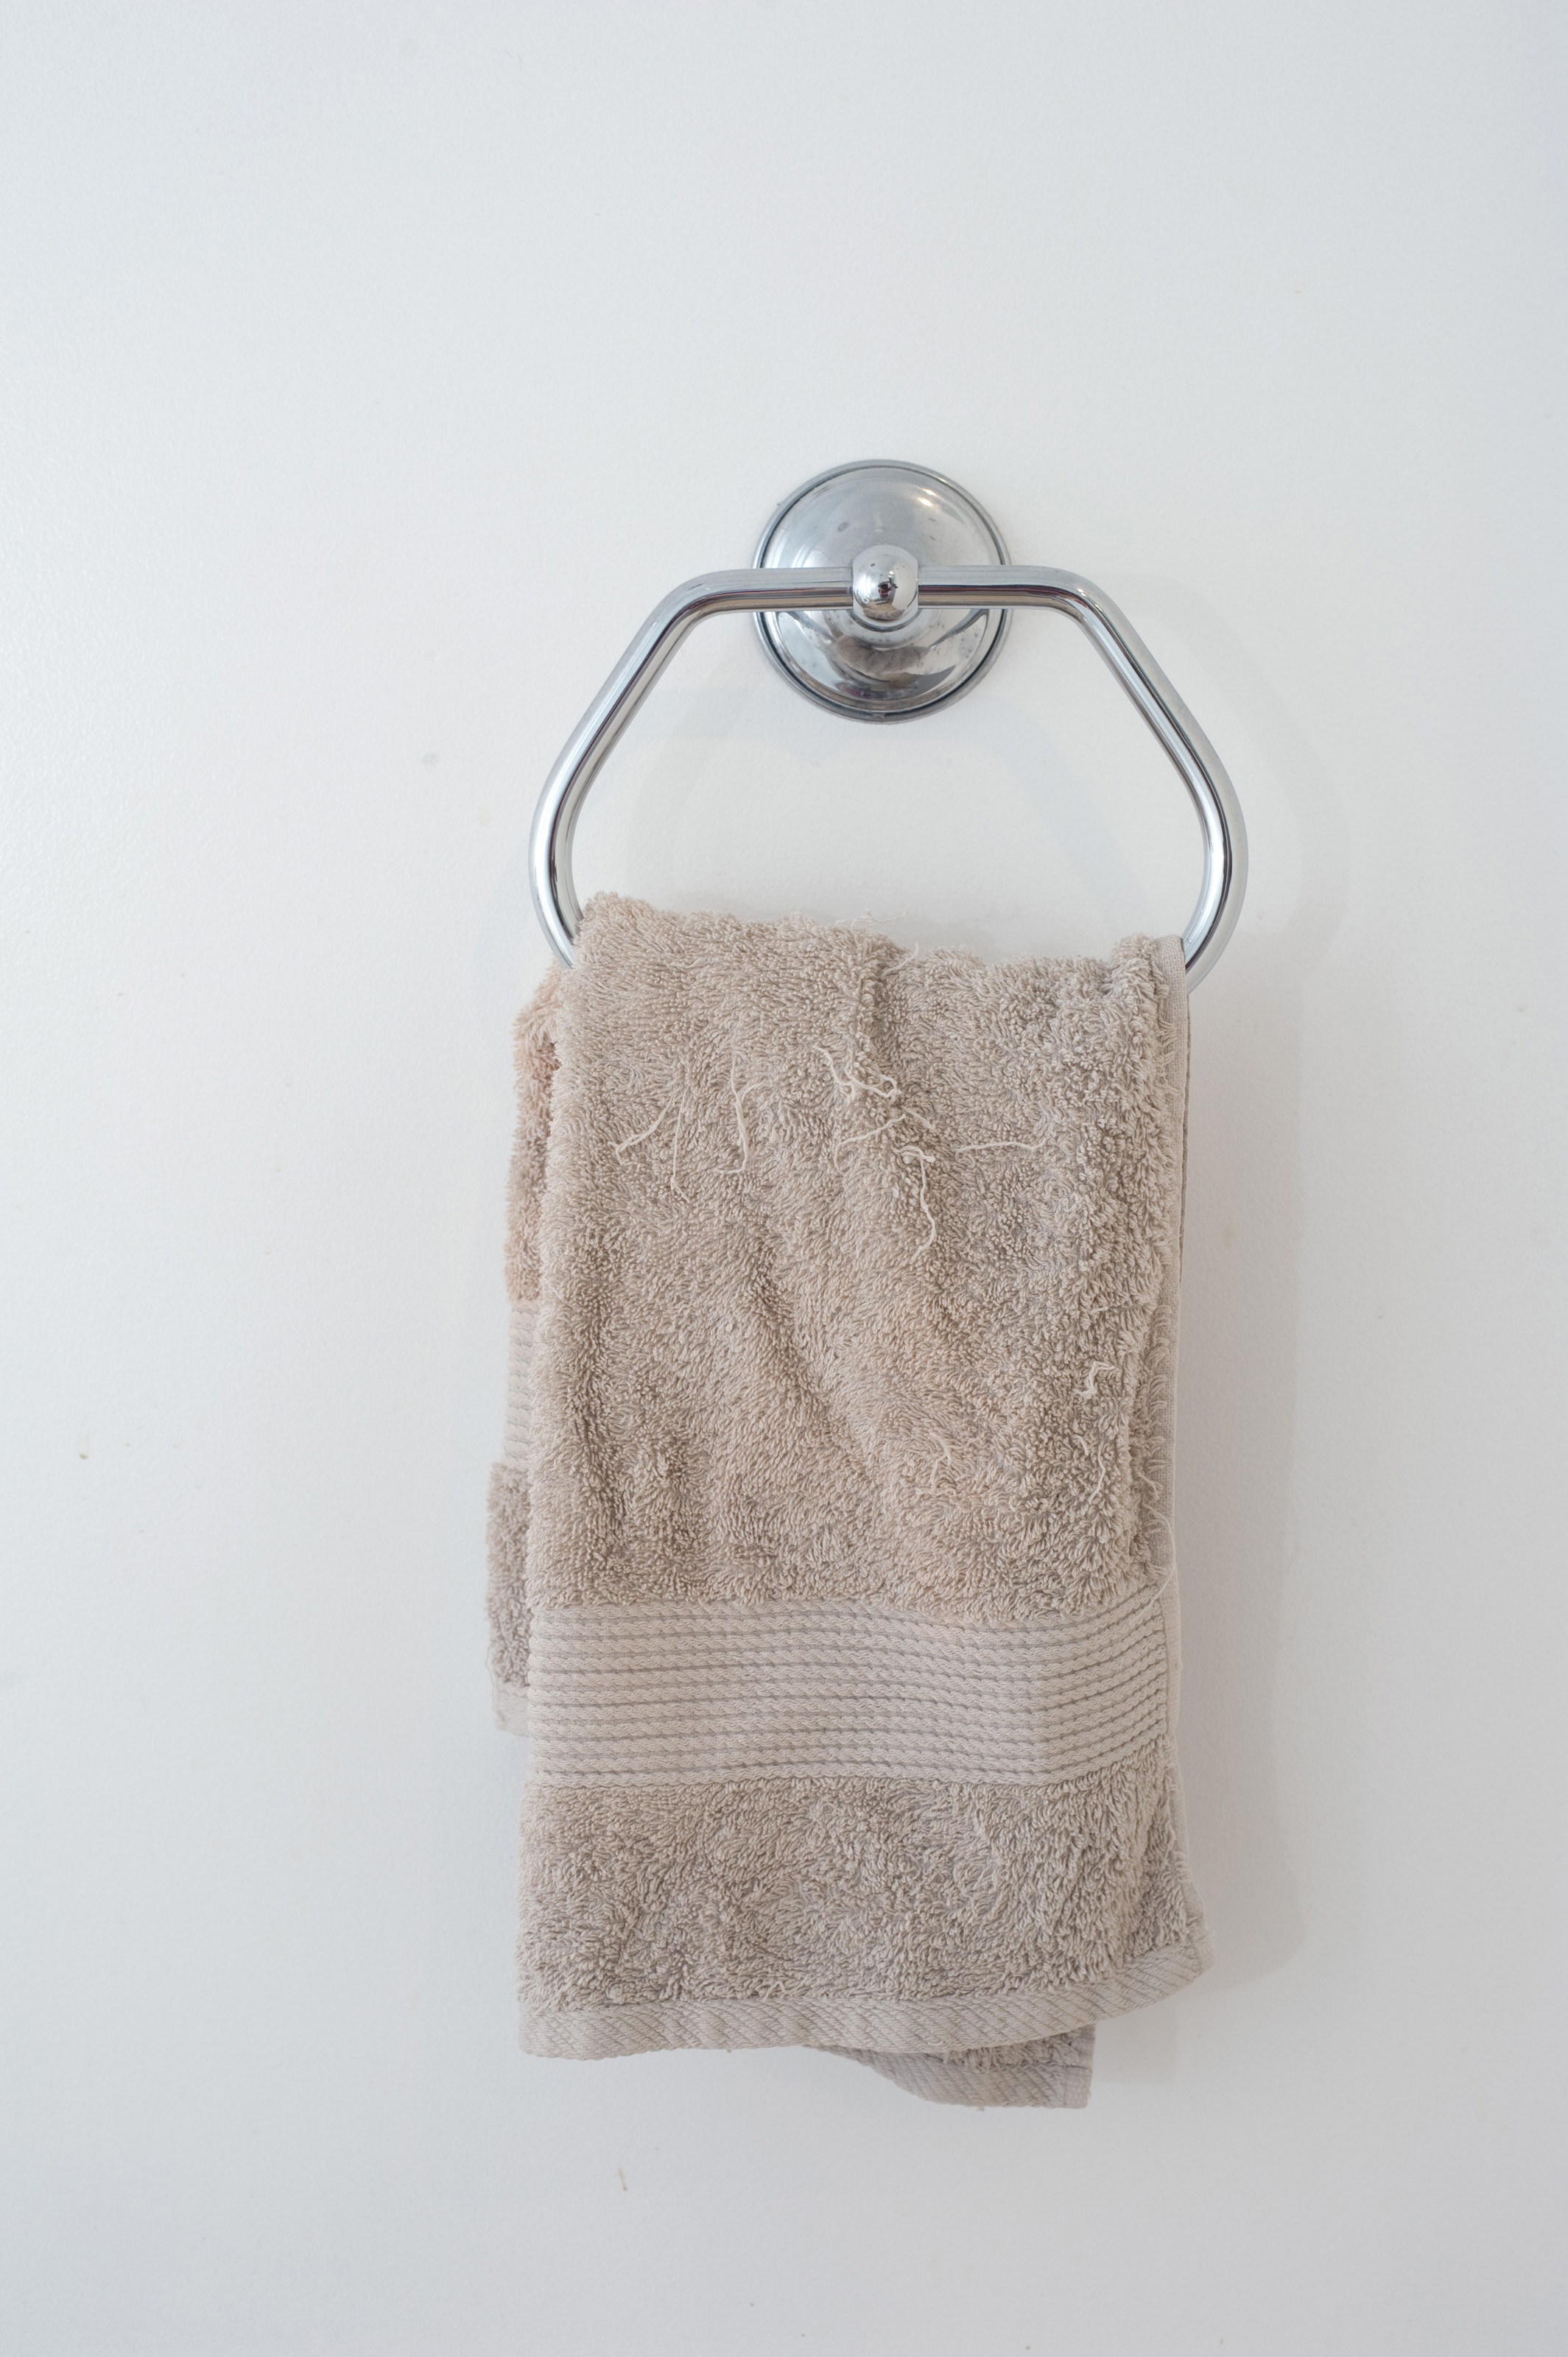 How To Hang Towels In Bathroom White Fresh Bath Robe Hang On Bathroom Wall White Shower Free